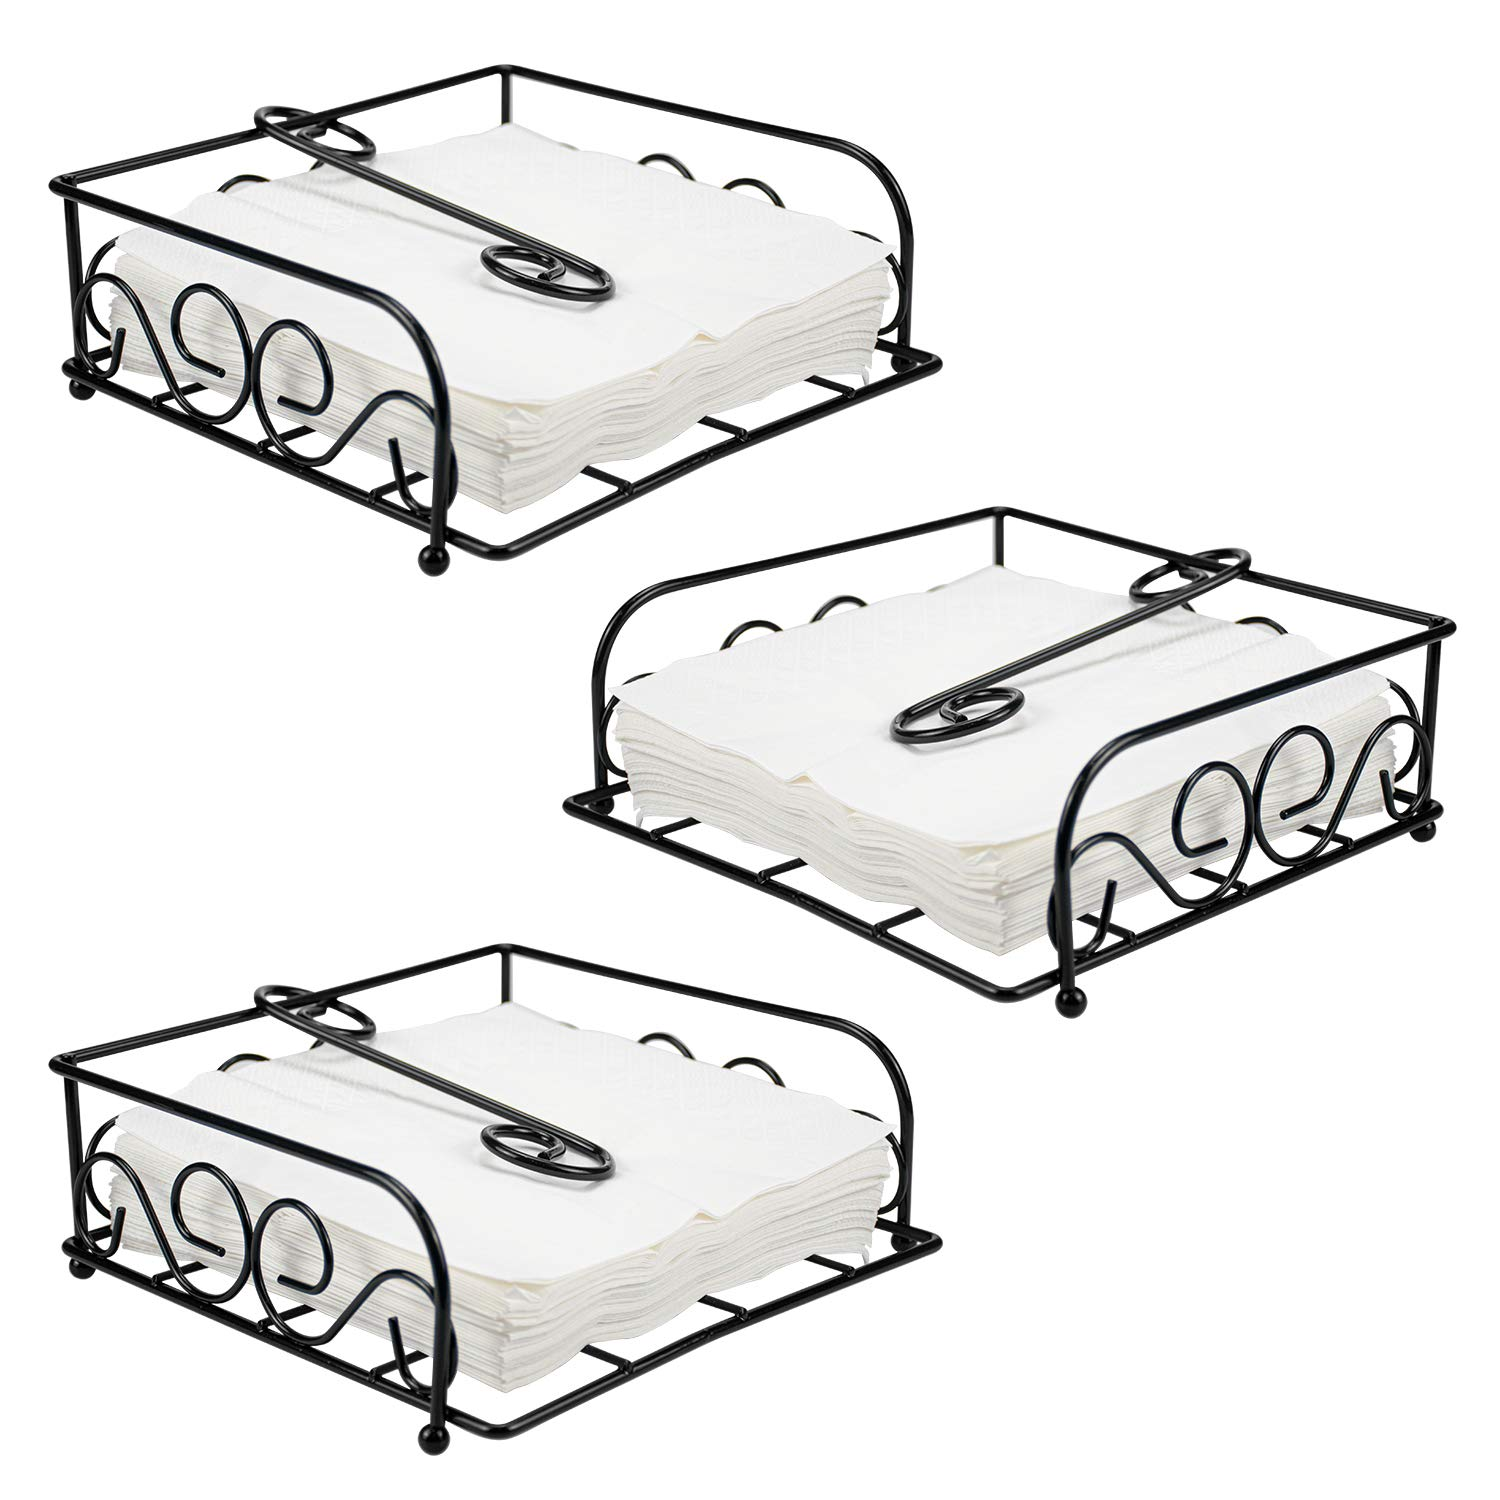 Kingrol 3-Pack Elegant Flat Metal Napkin Holder with Weighted Pivoted Arm by Kingrol